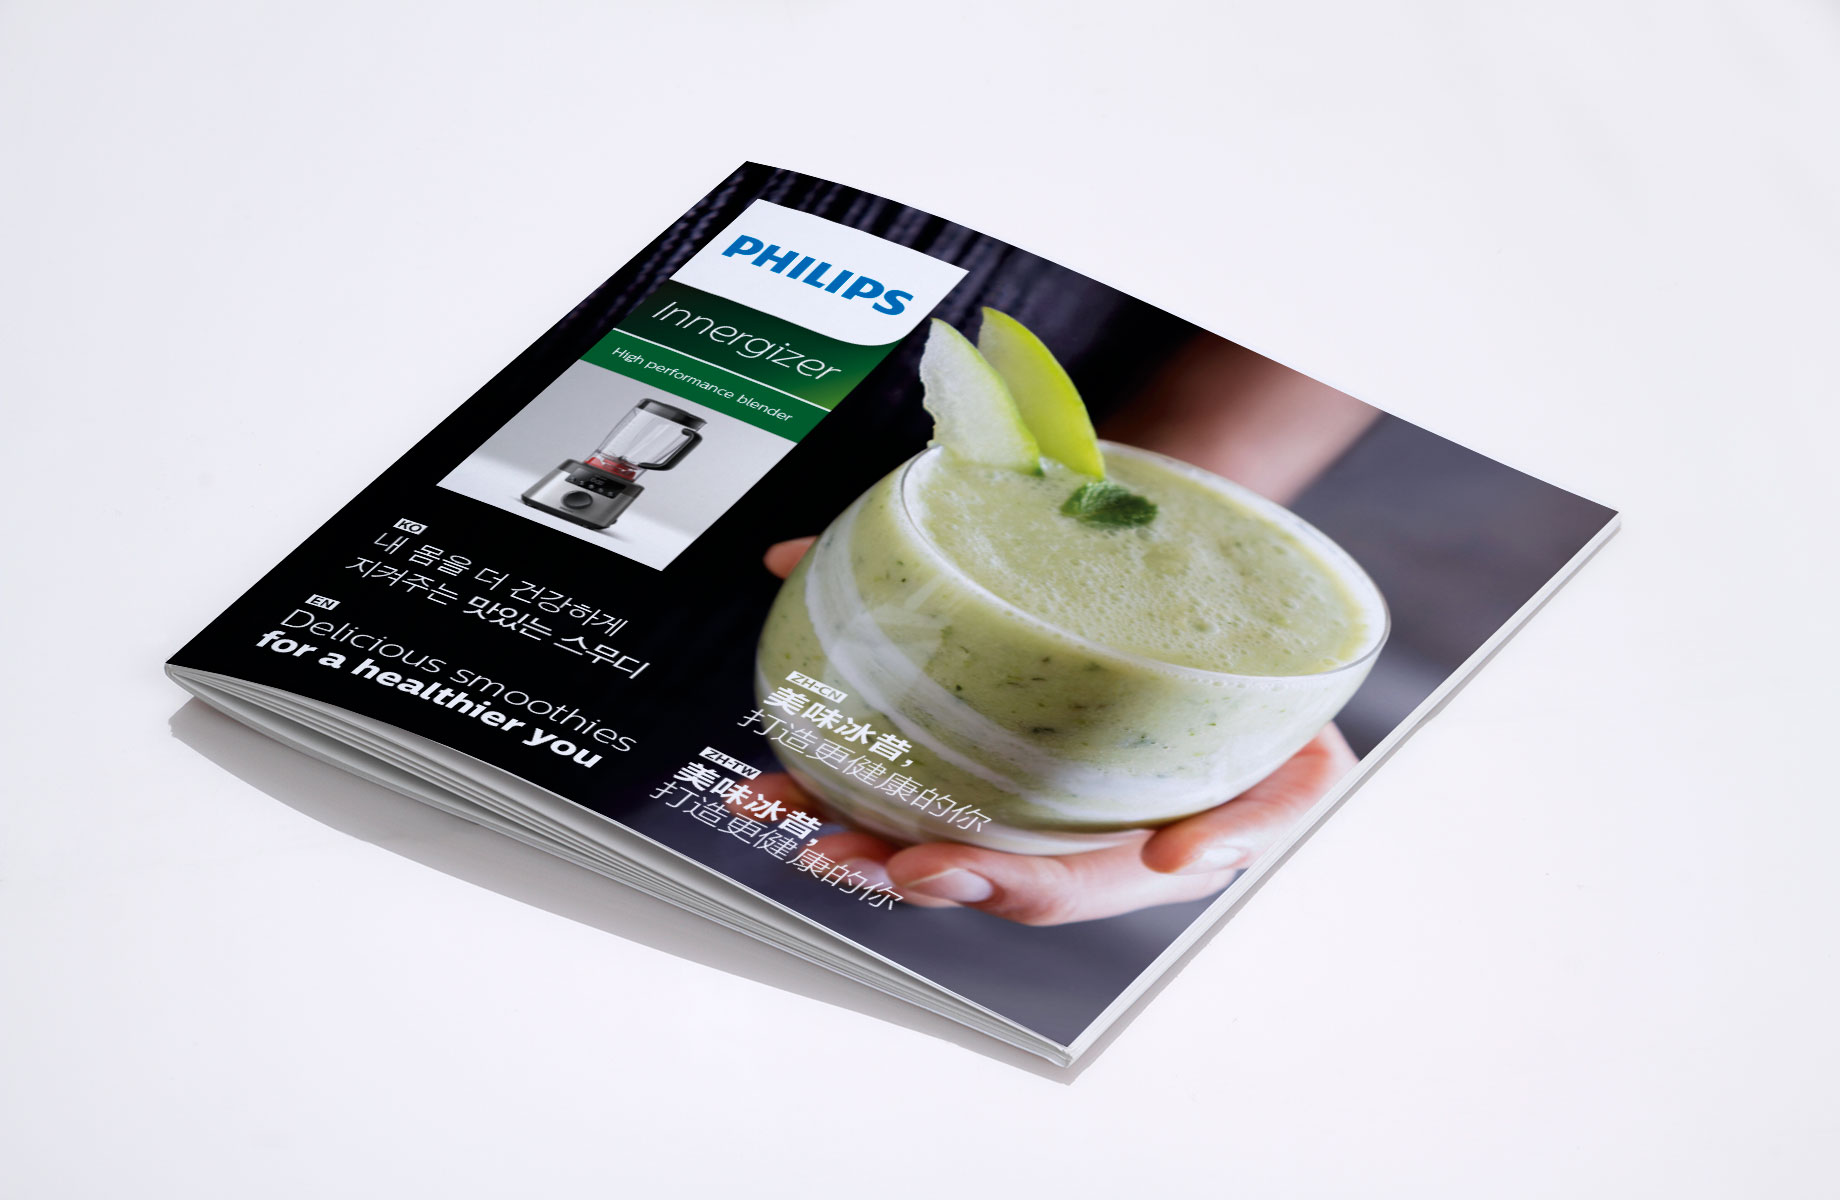 Philips recipe booklets